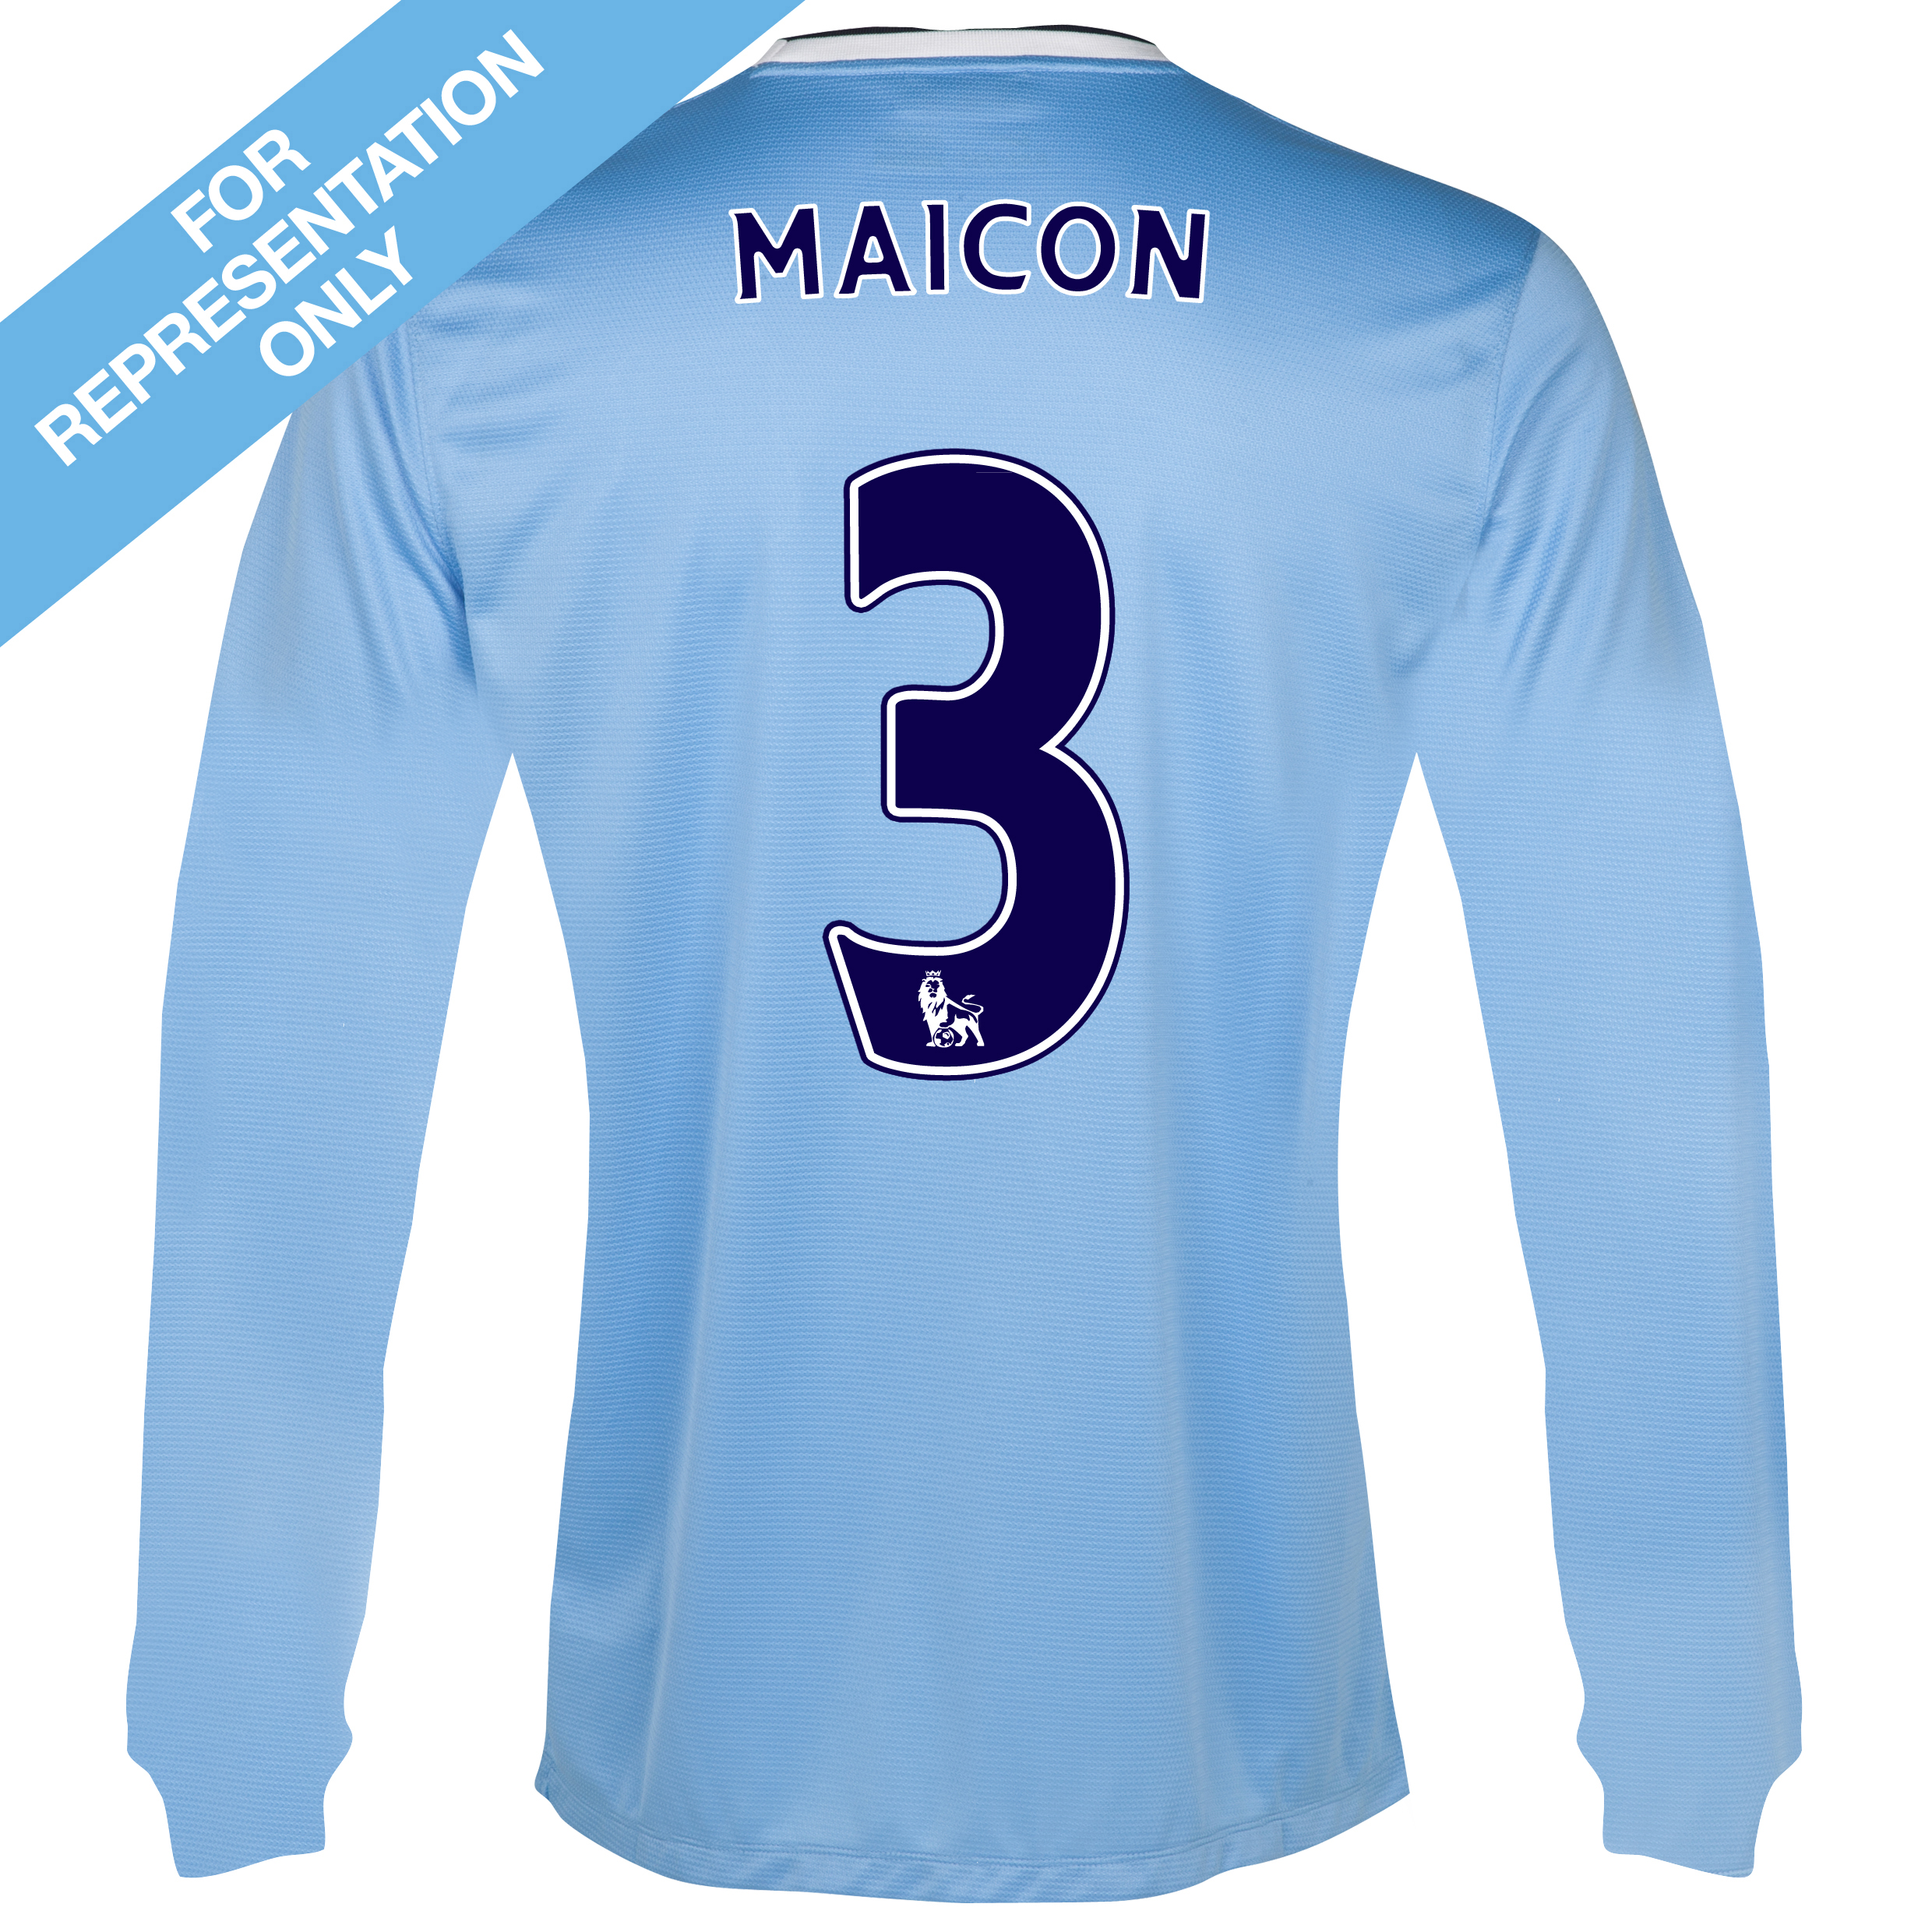 Manchester City Home Shirt 2013/14 - Long Sleeved - Junior with Maicon 3 printing